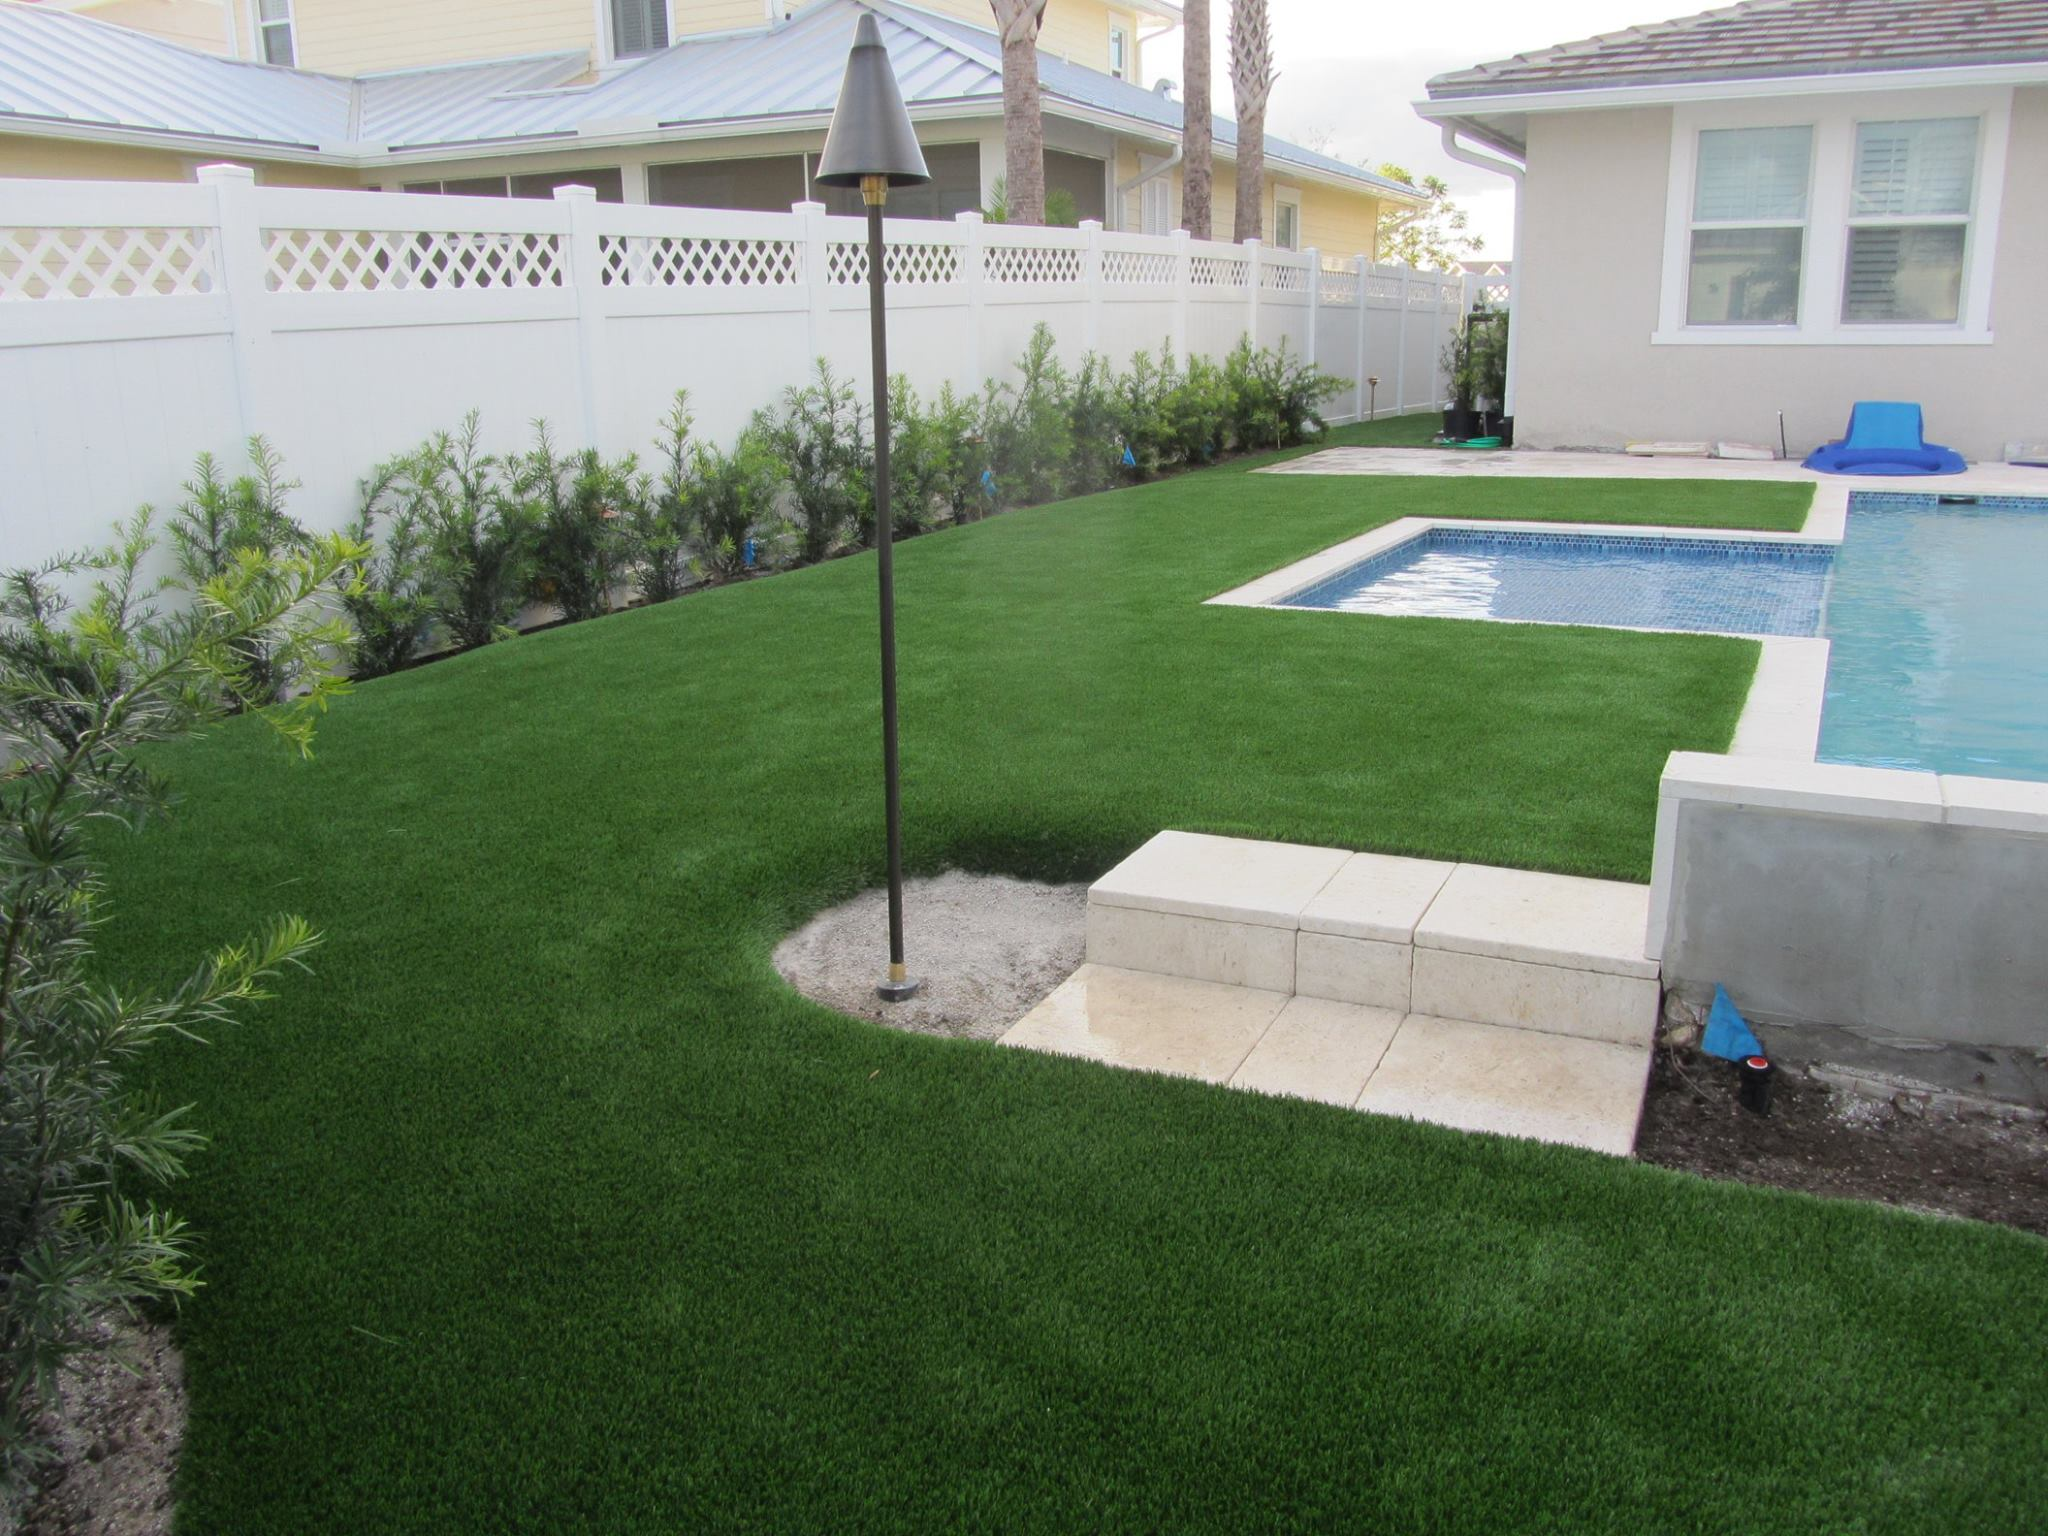 Artificial Grass Landscape Softlawn lawn landscaping synthetic turf international synthetic turf international softlawn lawn and landscape artificial grass workwithnaturefo